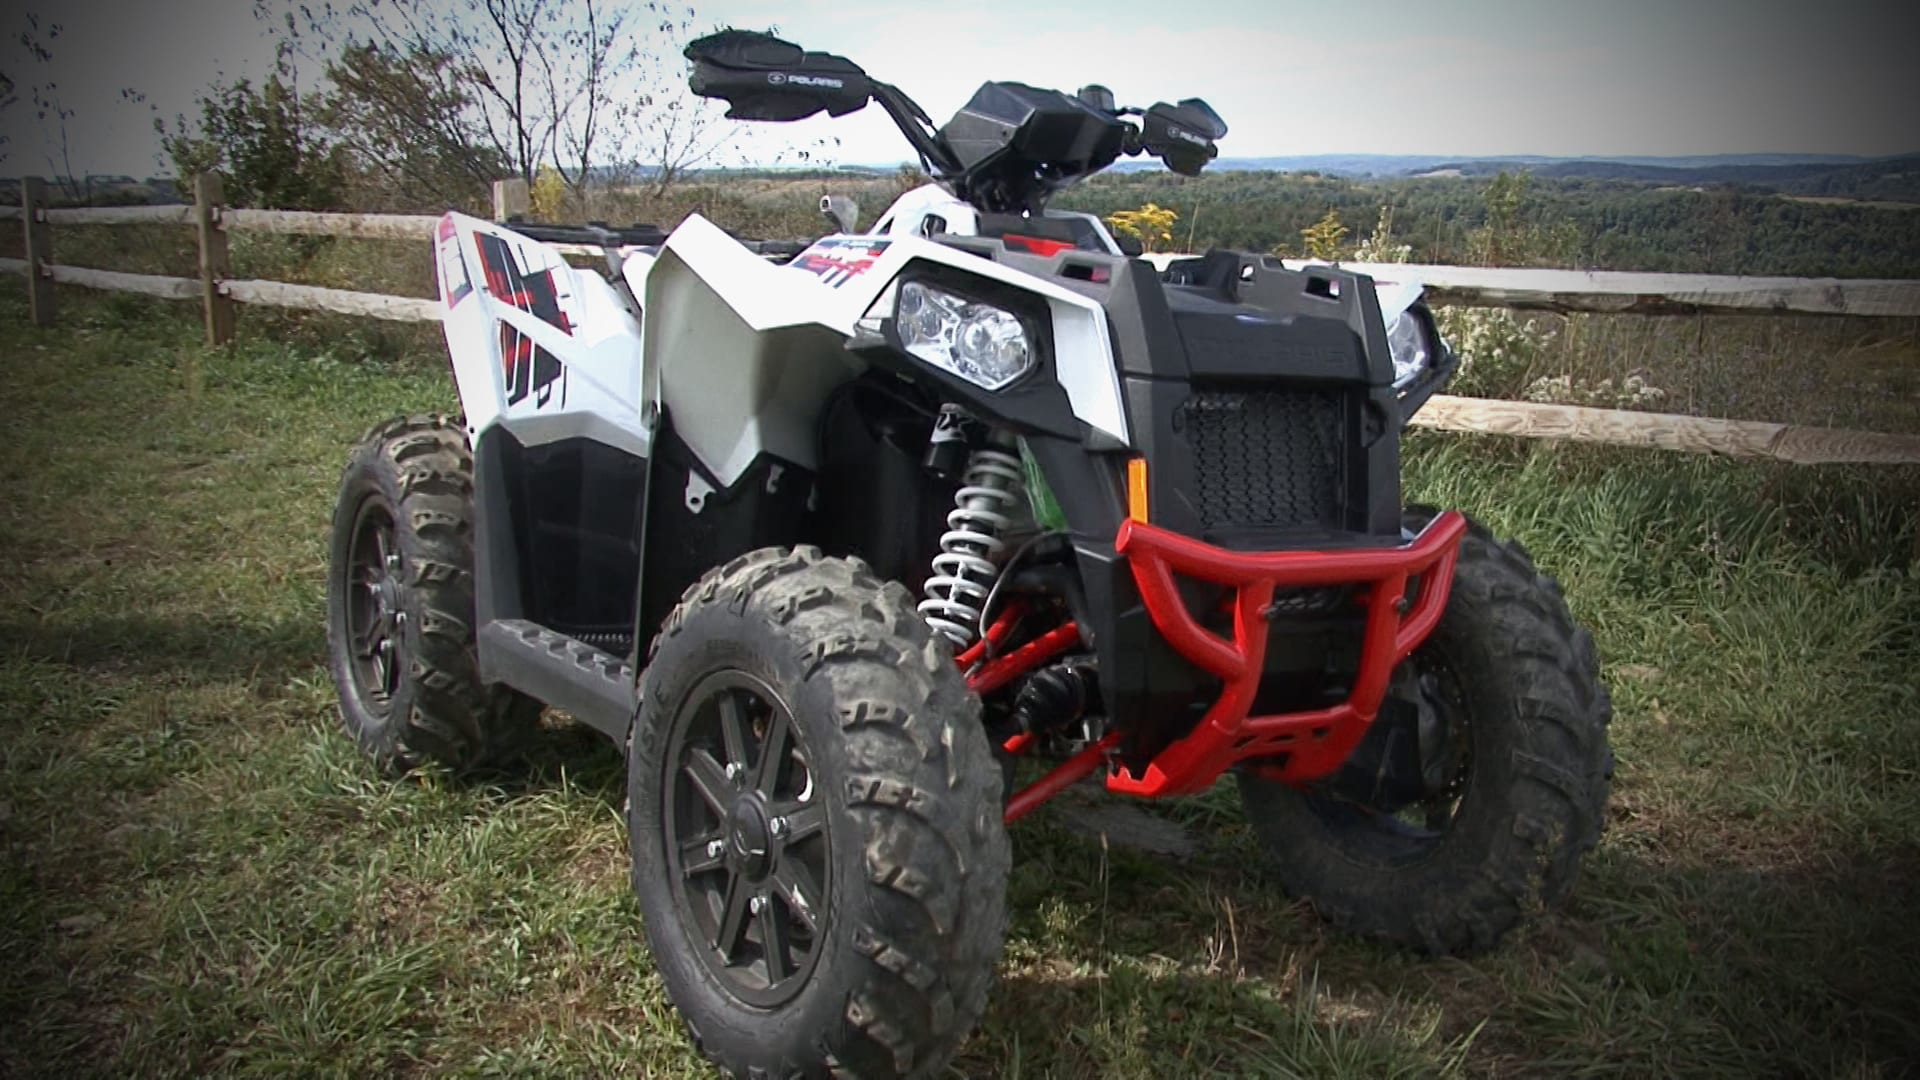 2014- 2017 Polaris Scrambler XP 1000 Throttle Release Switch Recall Alert